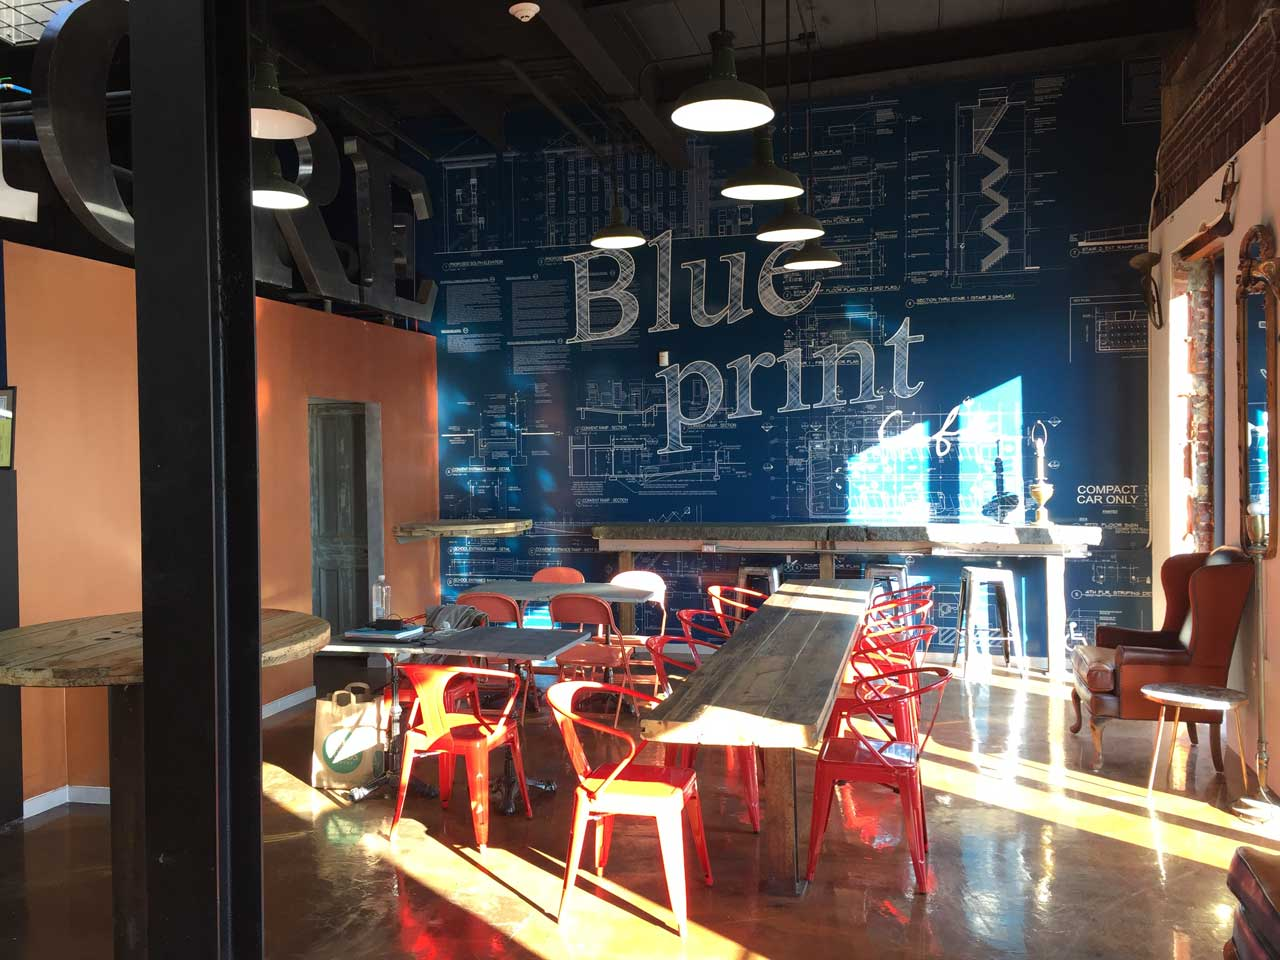 Blueprint caf opening in newark this week jersey digs blueprint cafe 369 raymond boulevard newark interior malvernweather Image collections